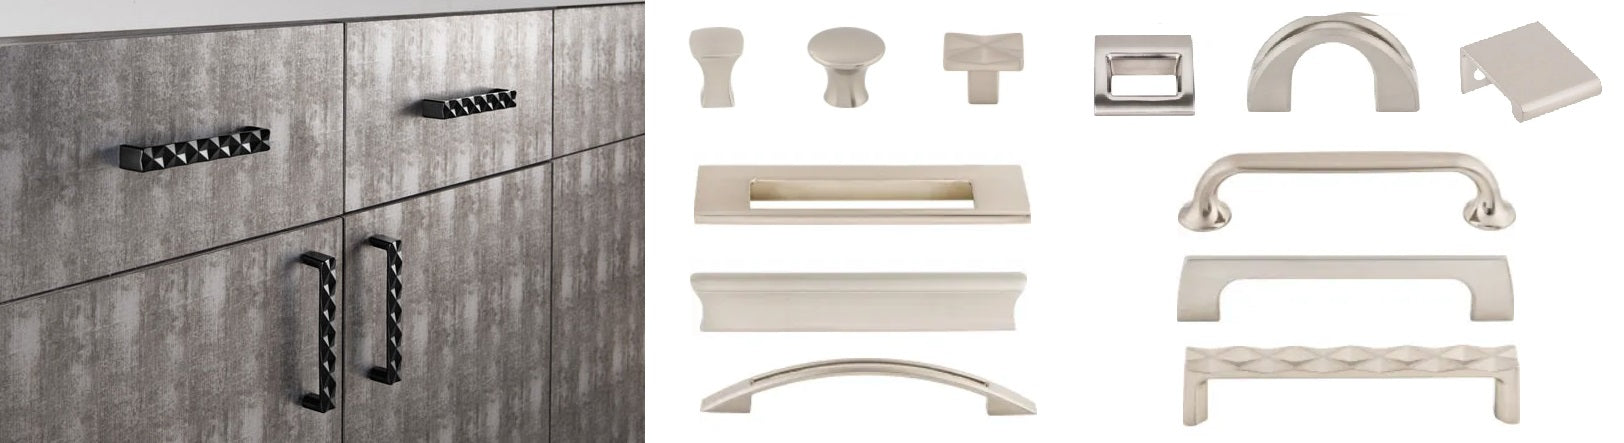 Top Knobs Mercer Collection, quilted handles and europa tab pull